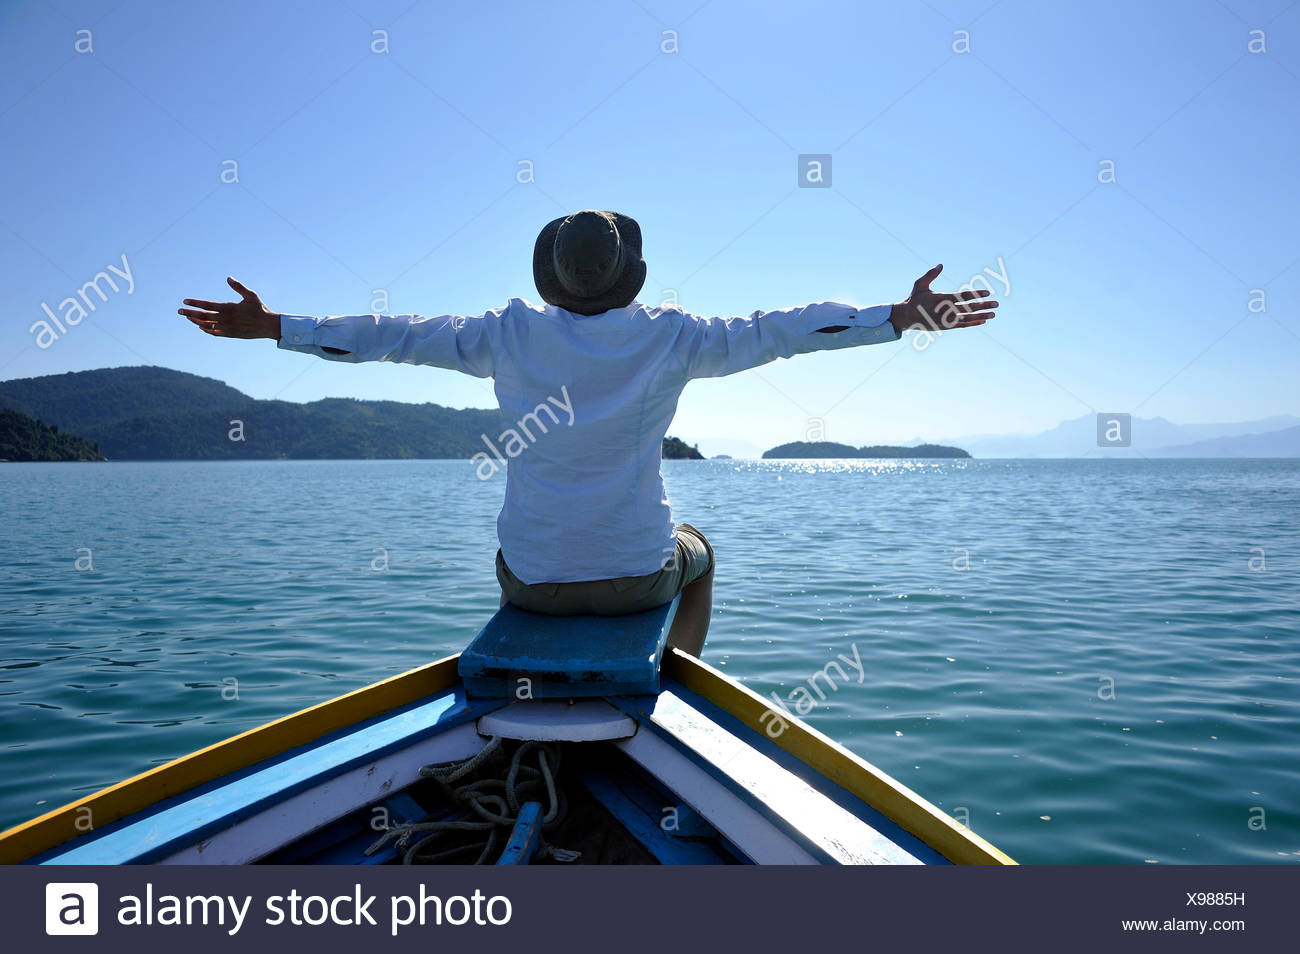 Young man sitting on the bow of a fishing boat with his arms wide open, Bay of Paraty or Parati, State of Rio de Janeiro, Brazil - Stock Image